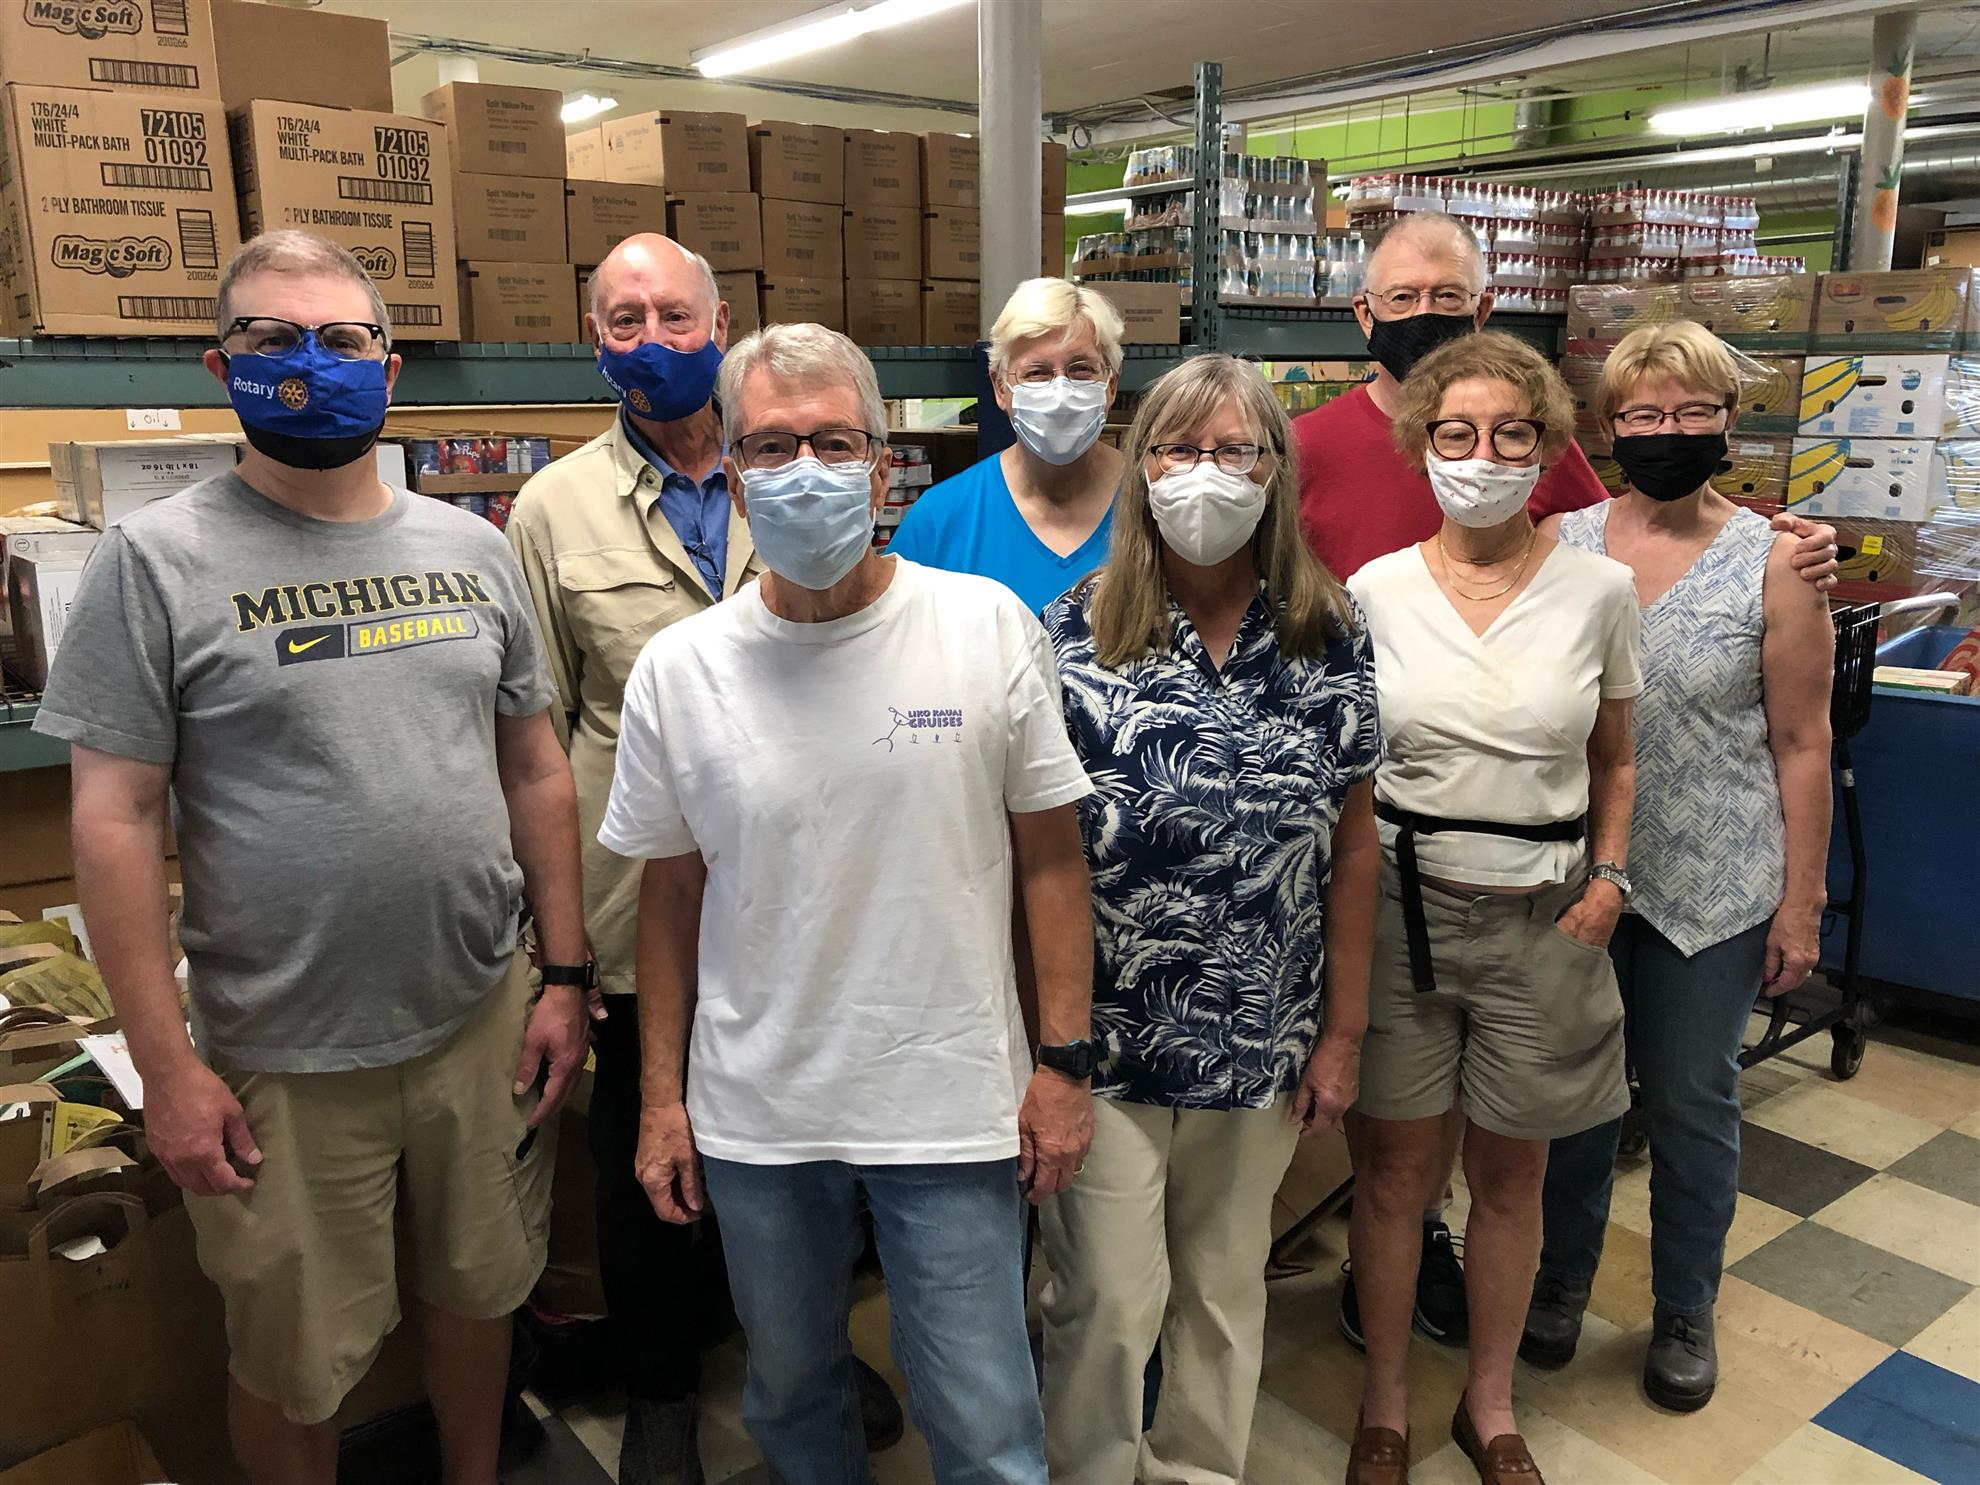 City of Lakes Rotary volunteers at CES food shelf in Minneapolis